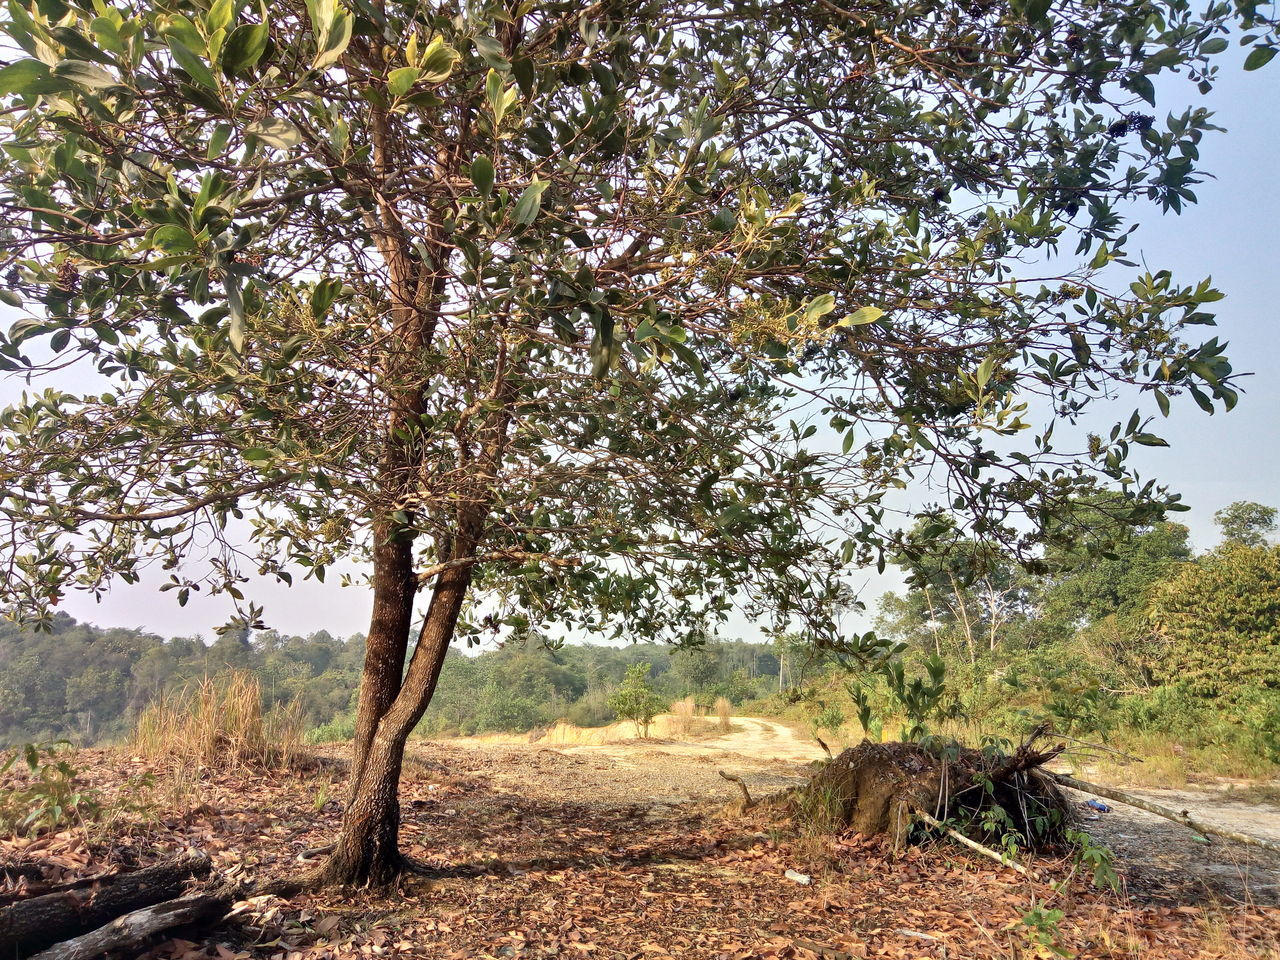 tree, plant, beauty in nature, landscape, nature, growth, tranquility, land, day, tranquil scene, sky, no people, scenics - nature, environment, field, outdoors, branch, non-urban scene, tree trunk, trunk